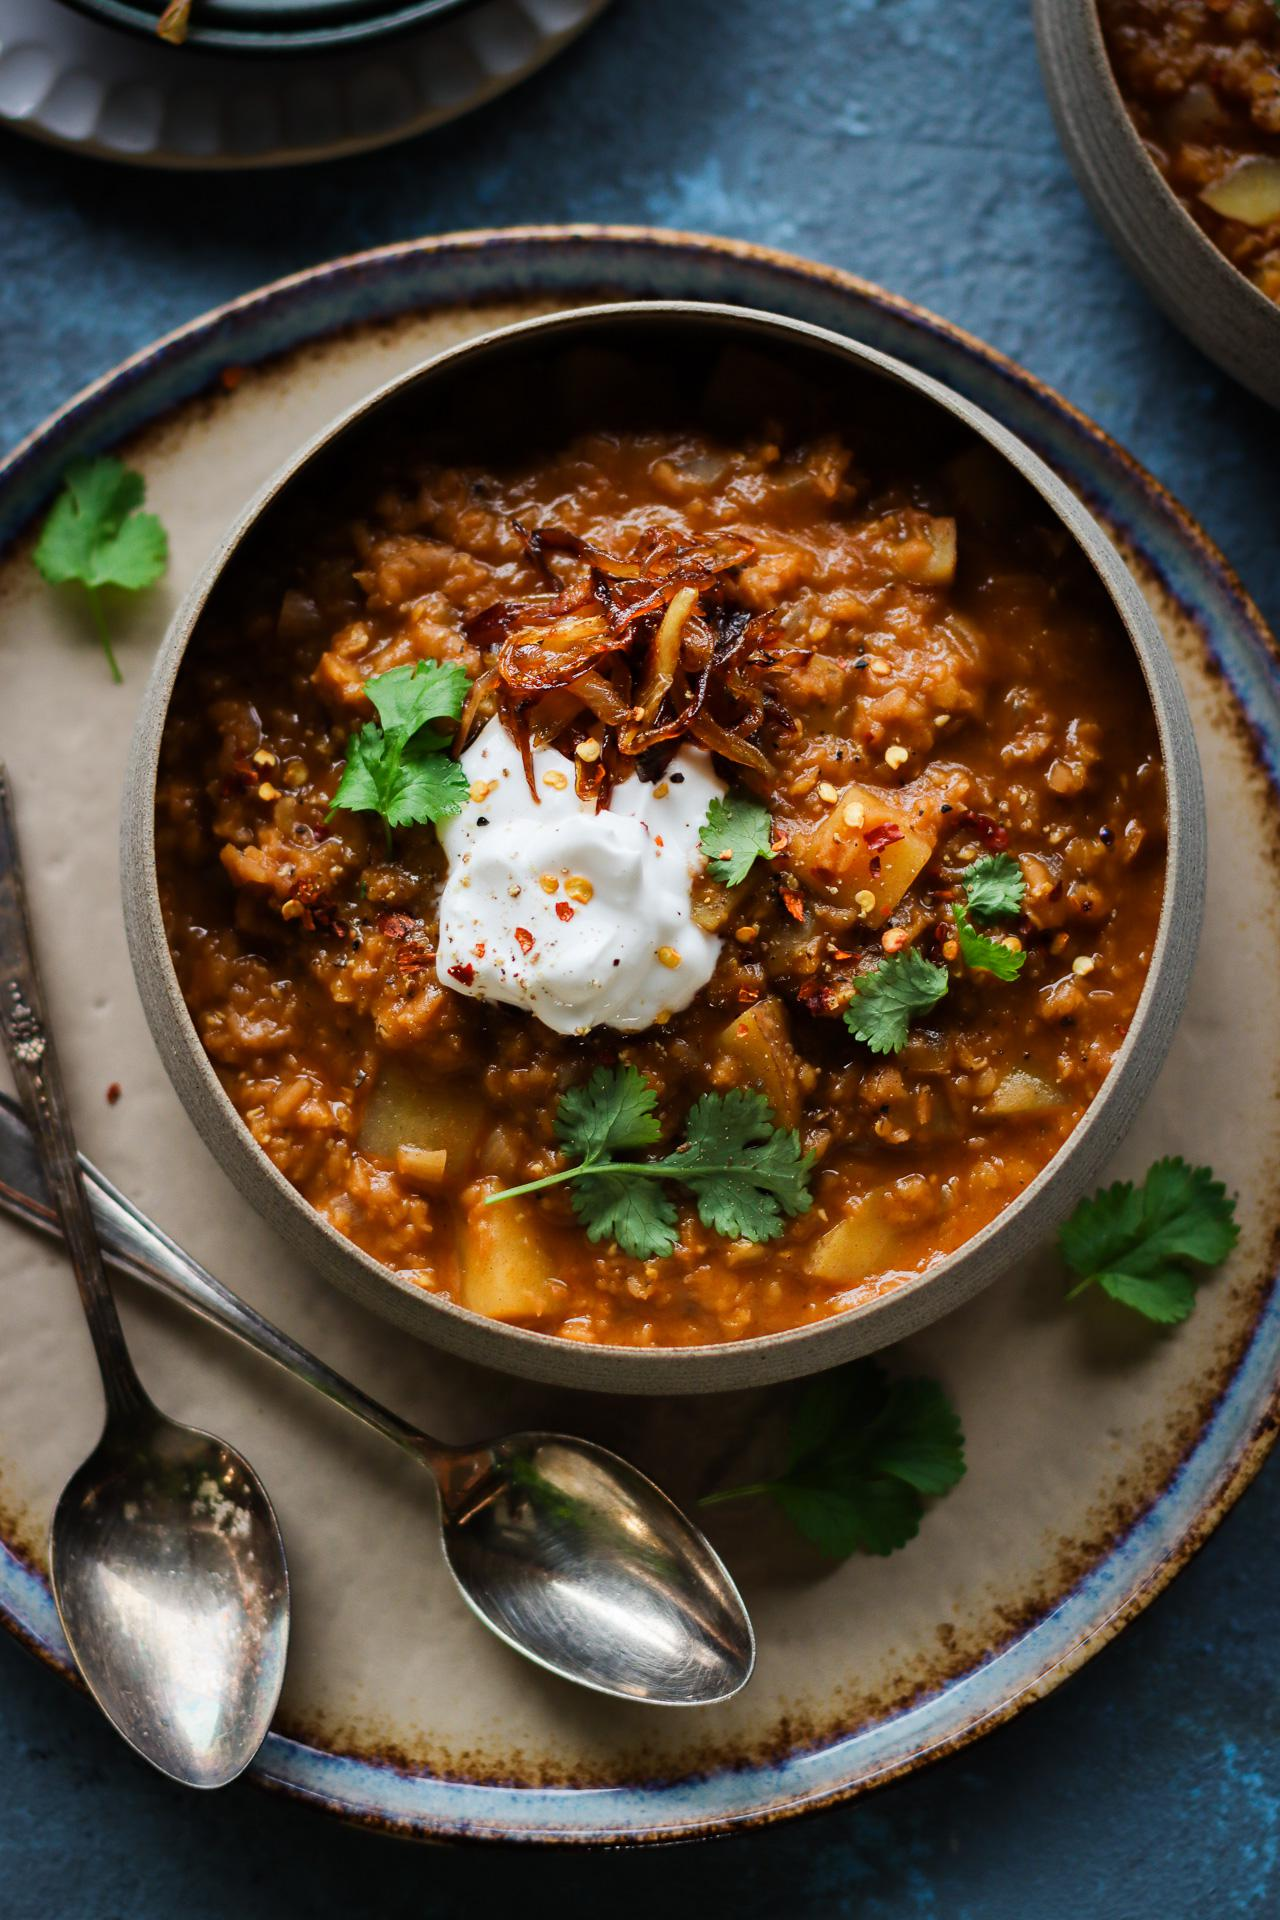 Main image of Turkish Red Lentil Soup